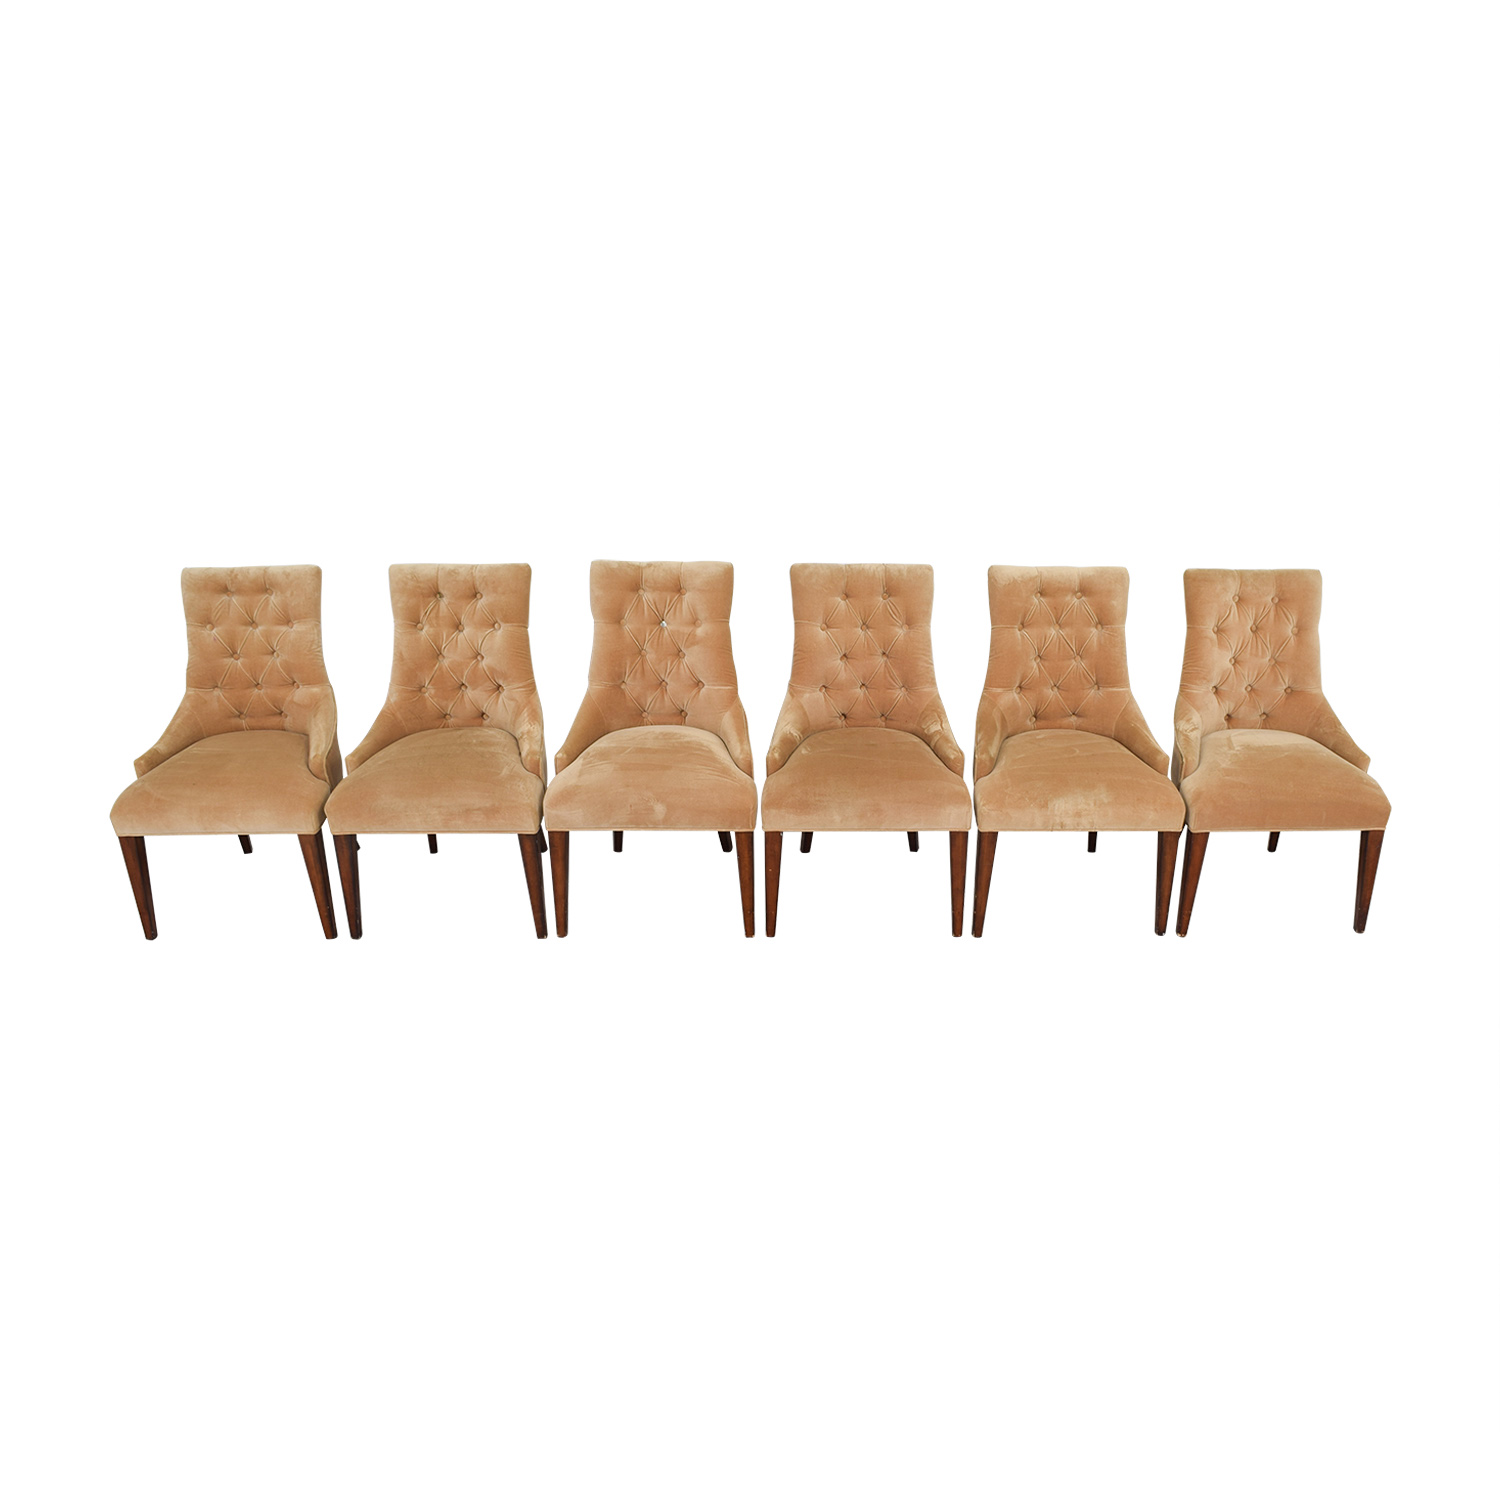 Tan Tufted Velvet Chairs Chairs